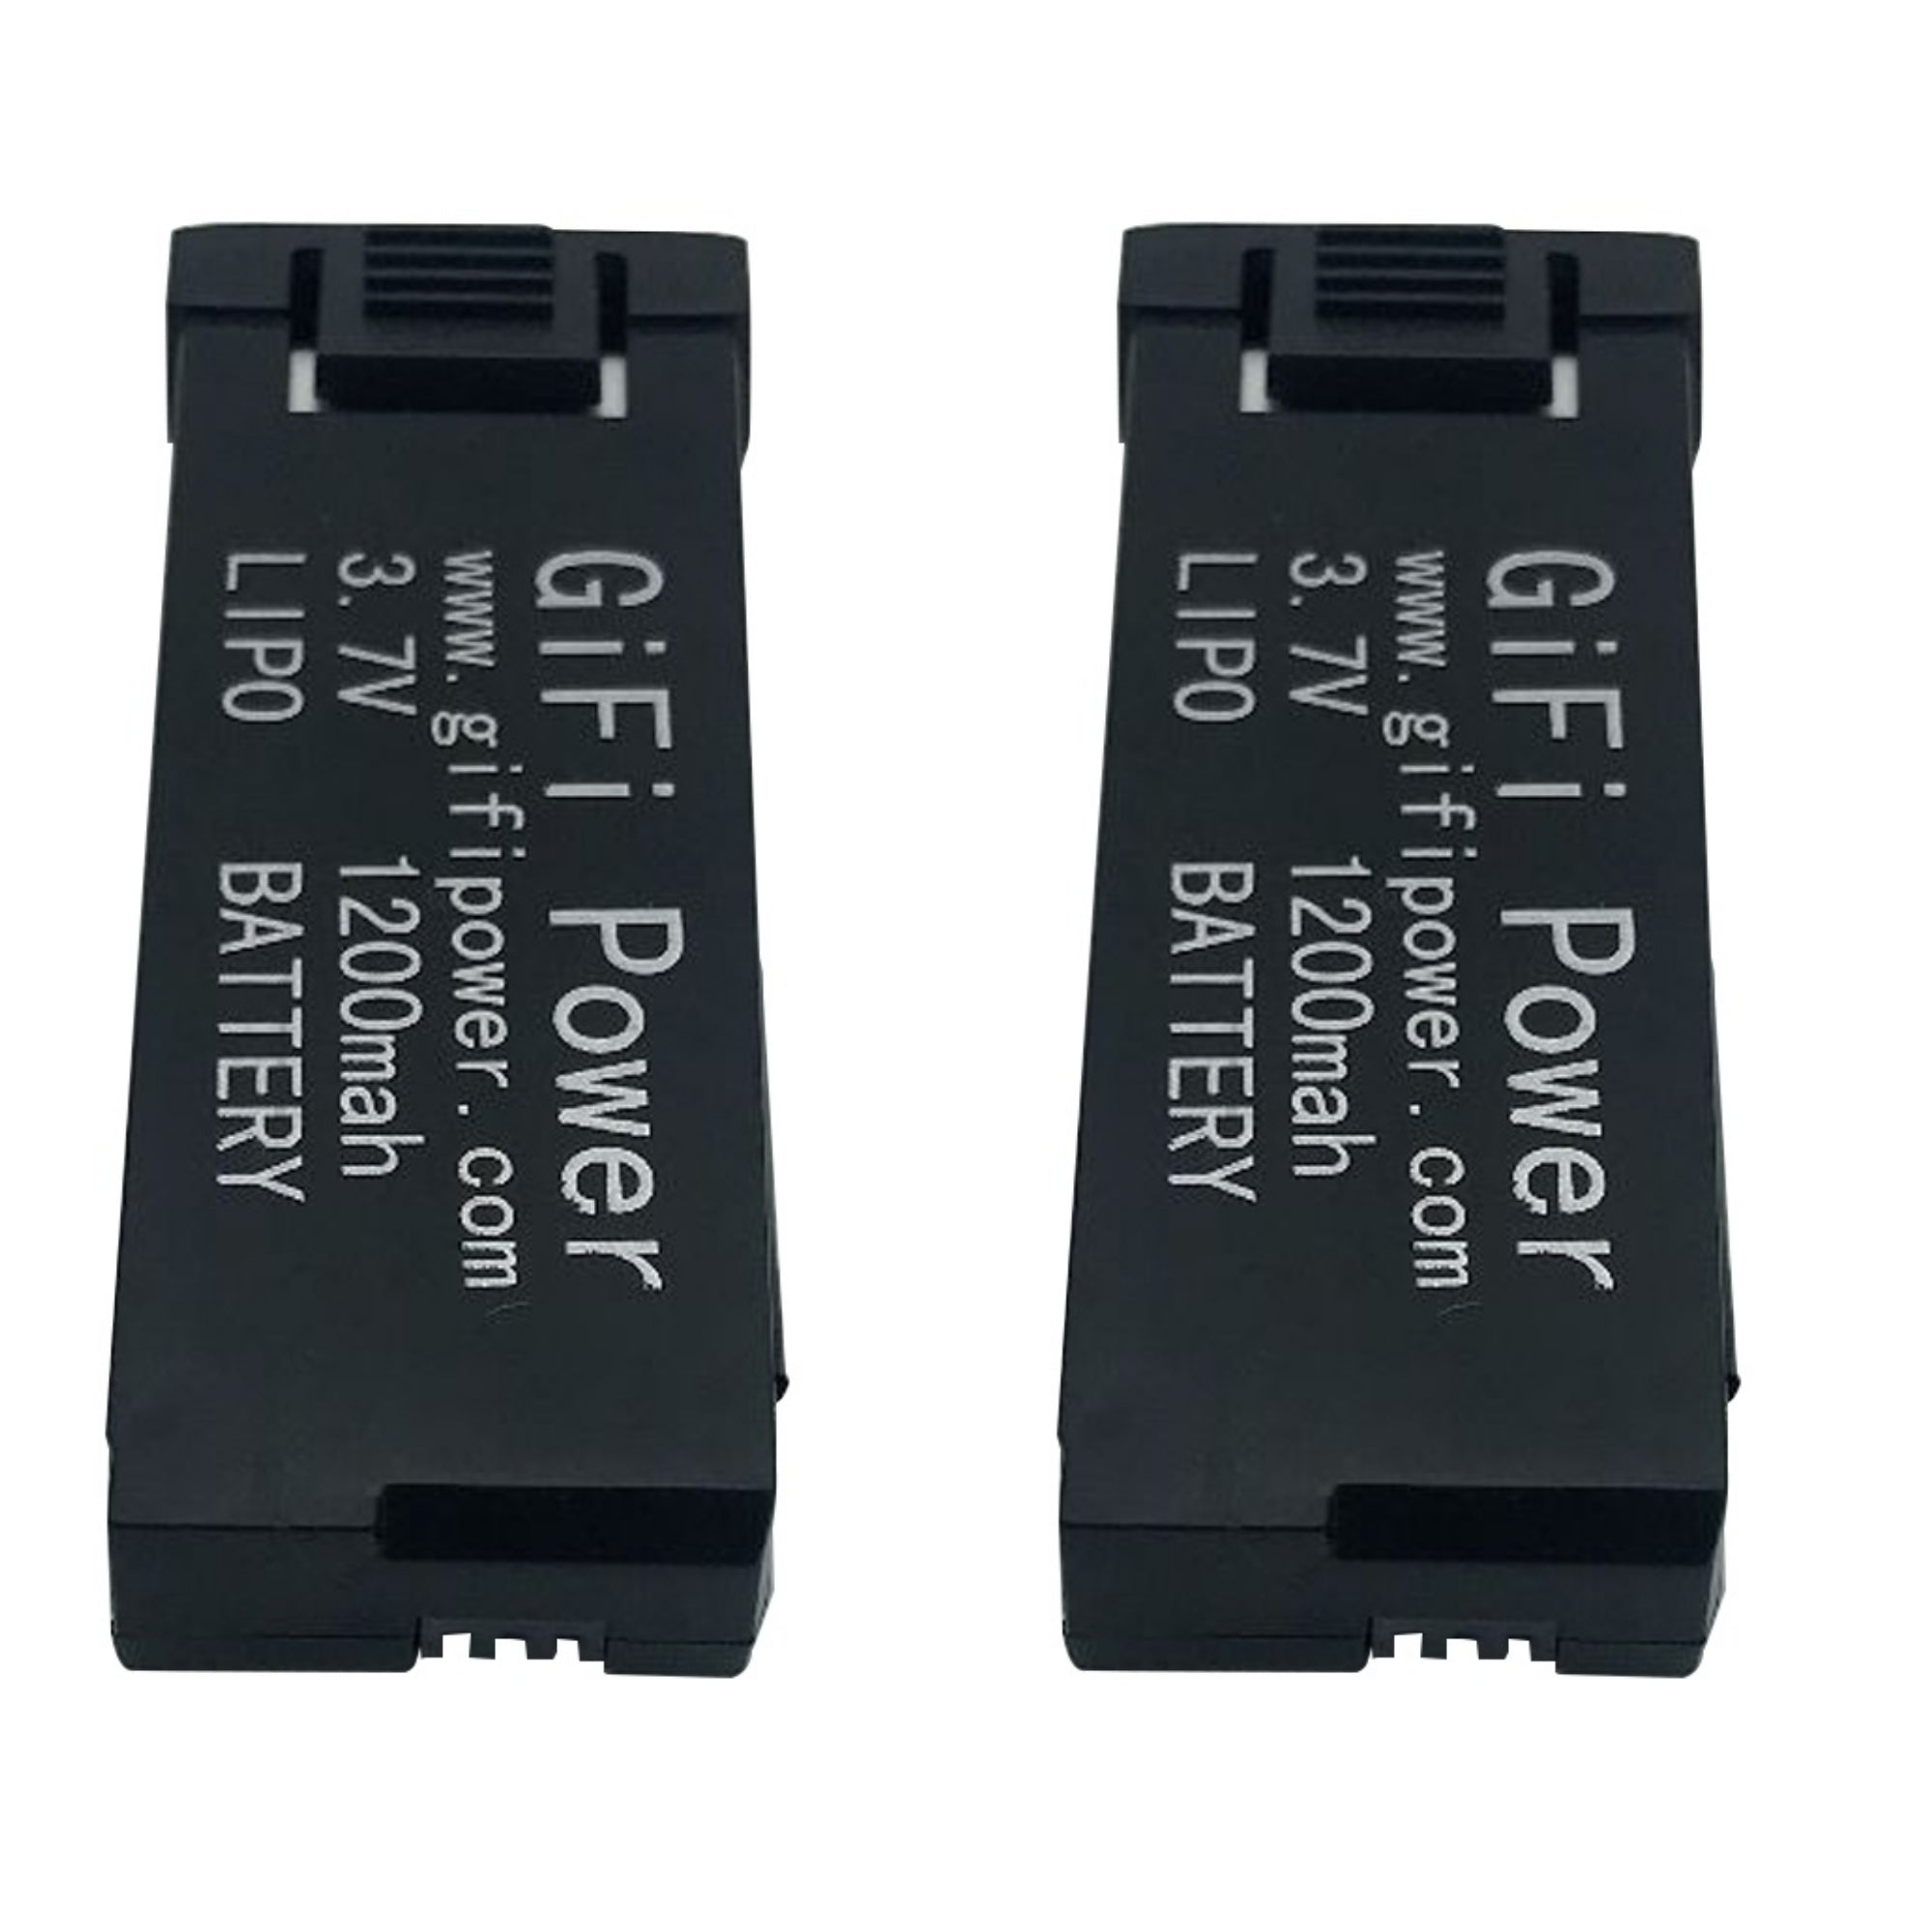 2 PACK 3.7V 1200mAh LiPo Batteries for Eachine E58 Drone